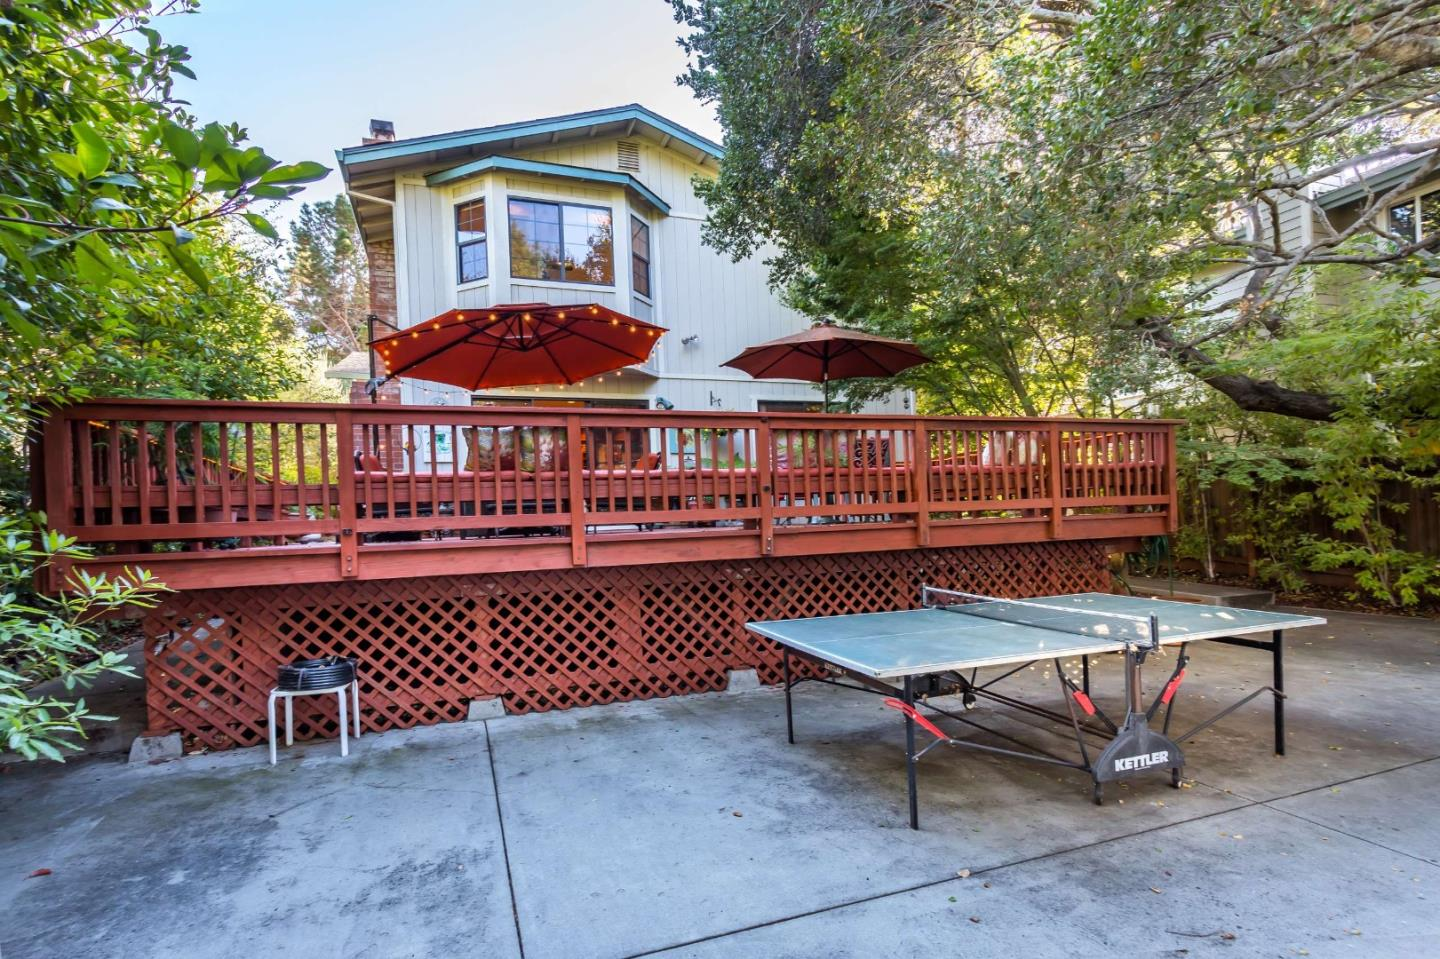 757 Lakeview Way Redwood City, CA 94062 - MLS #: ML81726558